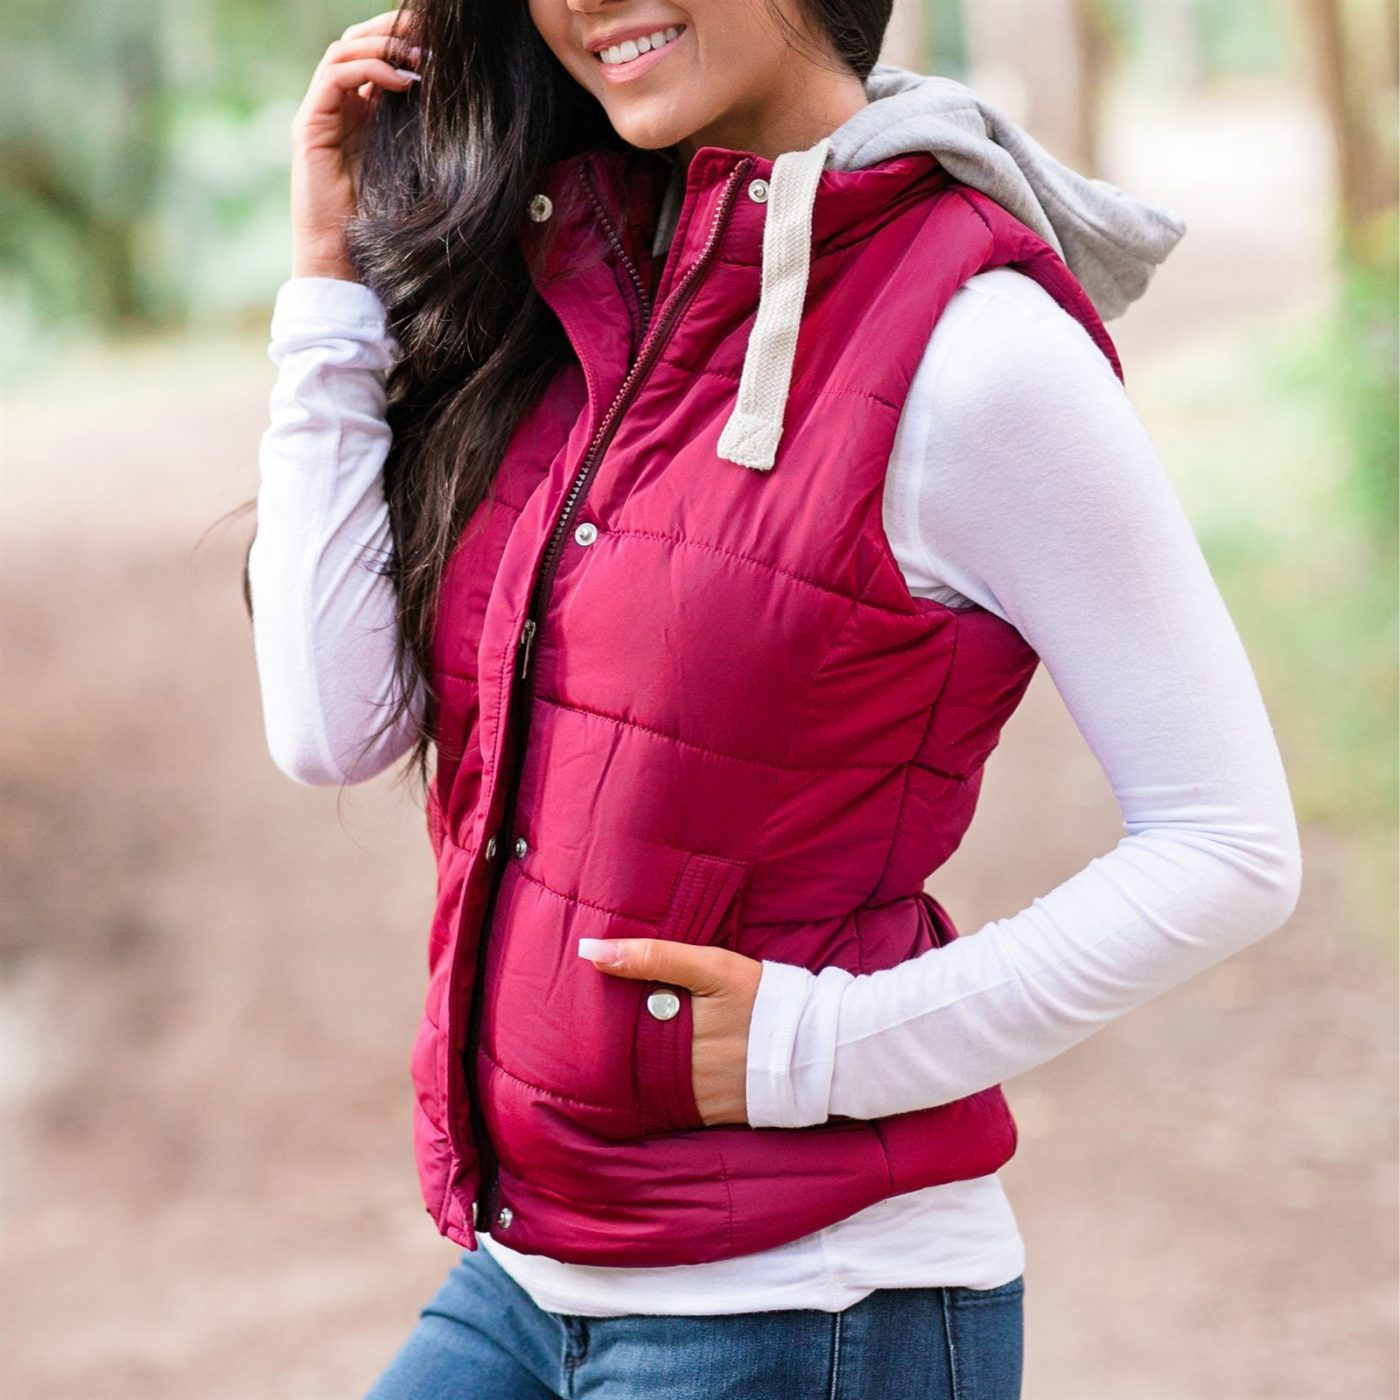 Was $54.99 - Now $26.99 - Quilted Padded Hooded Vest | Free Shipping (10/15 to 10/17)